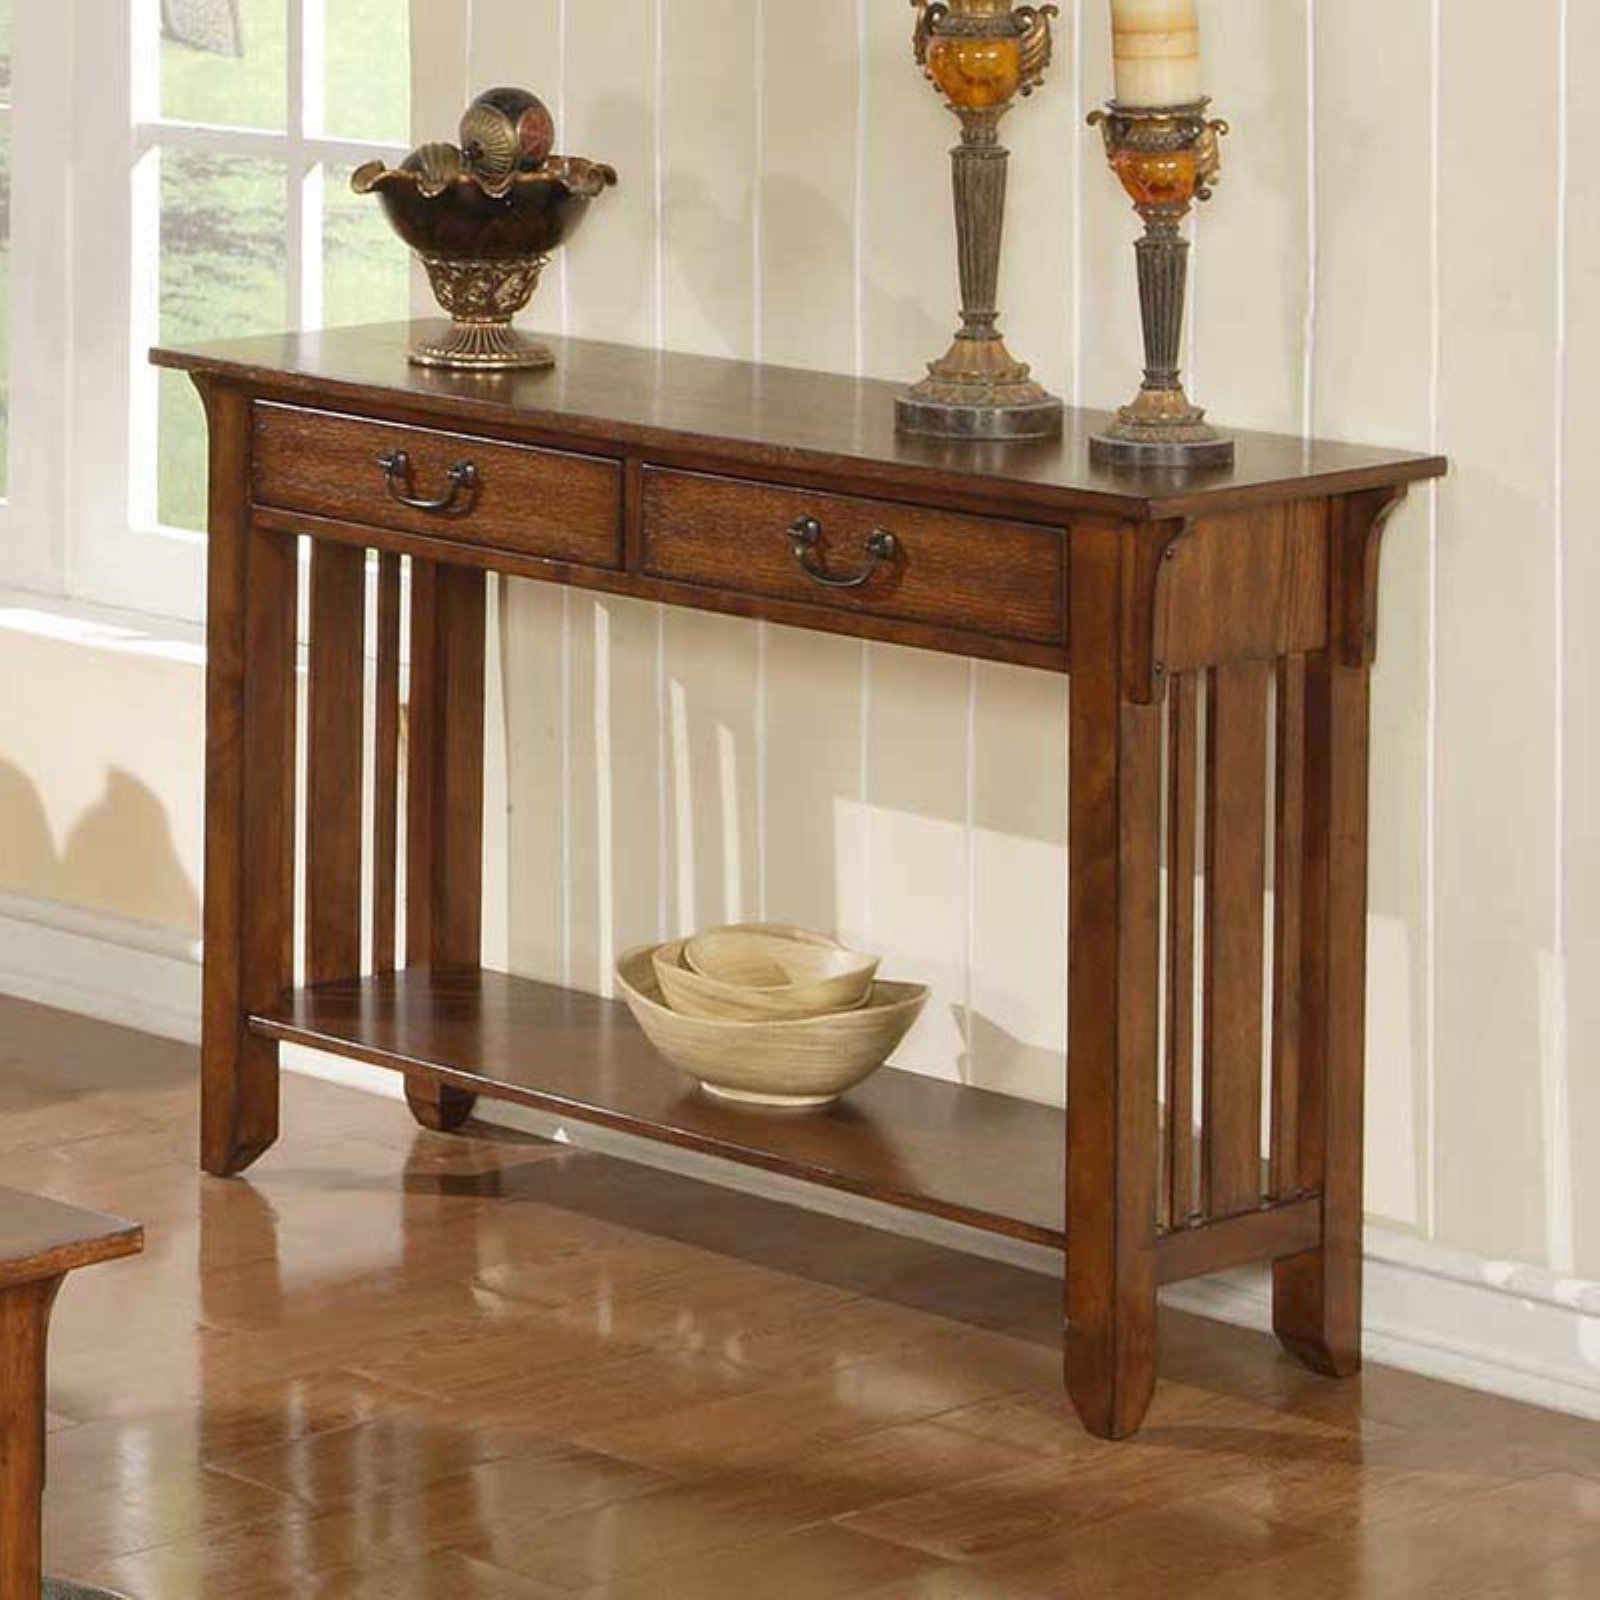 Zahara 2 Drawer Sofa Table - Mission Oak